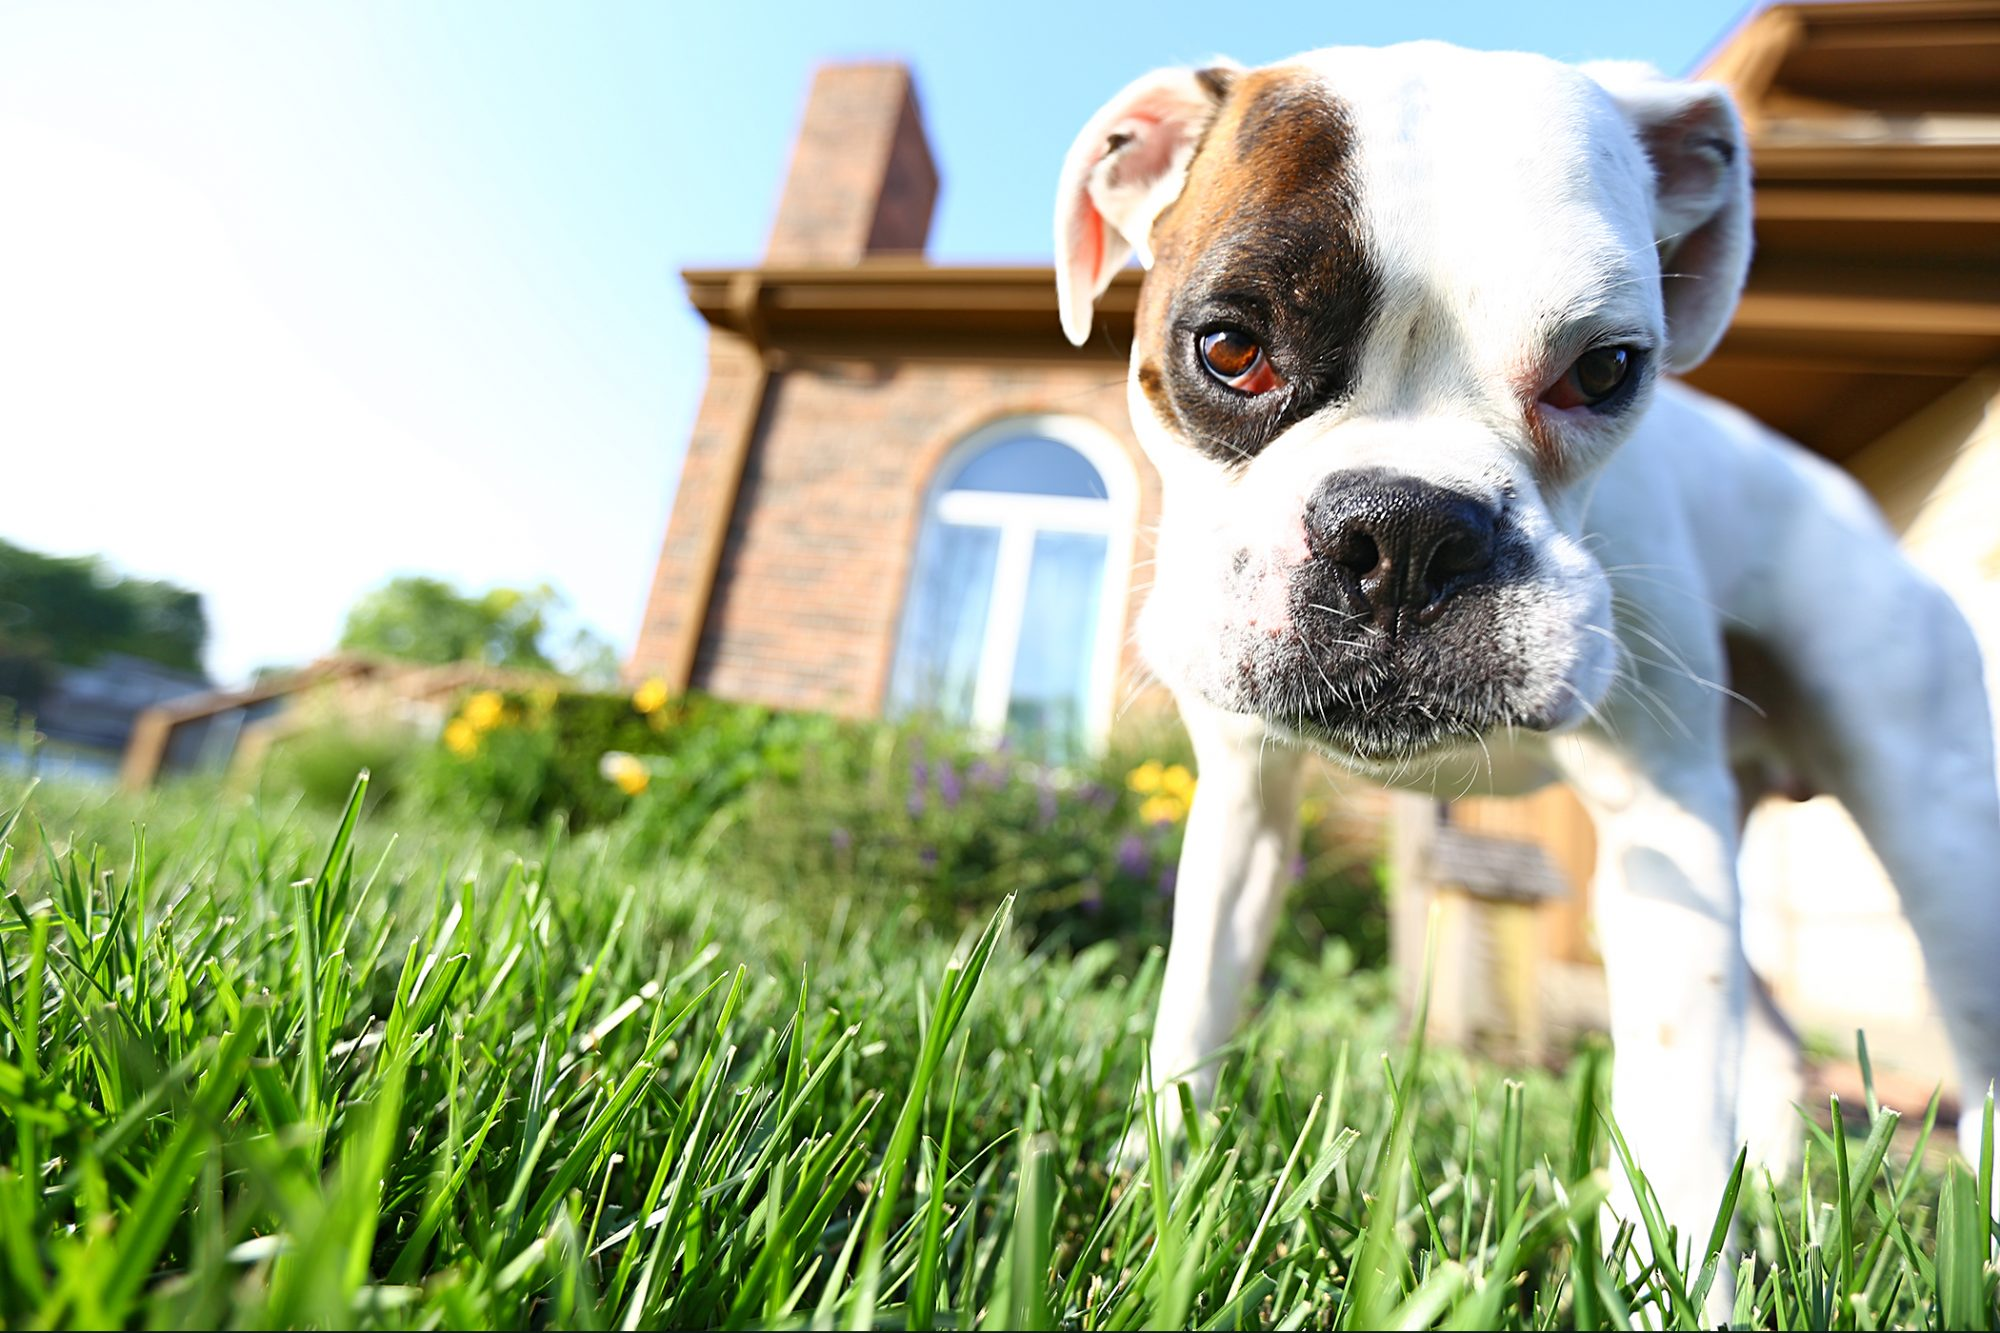 white boxer puppy standing in the yard in front of a brick house